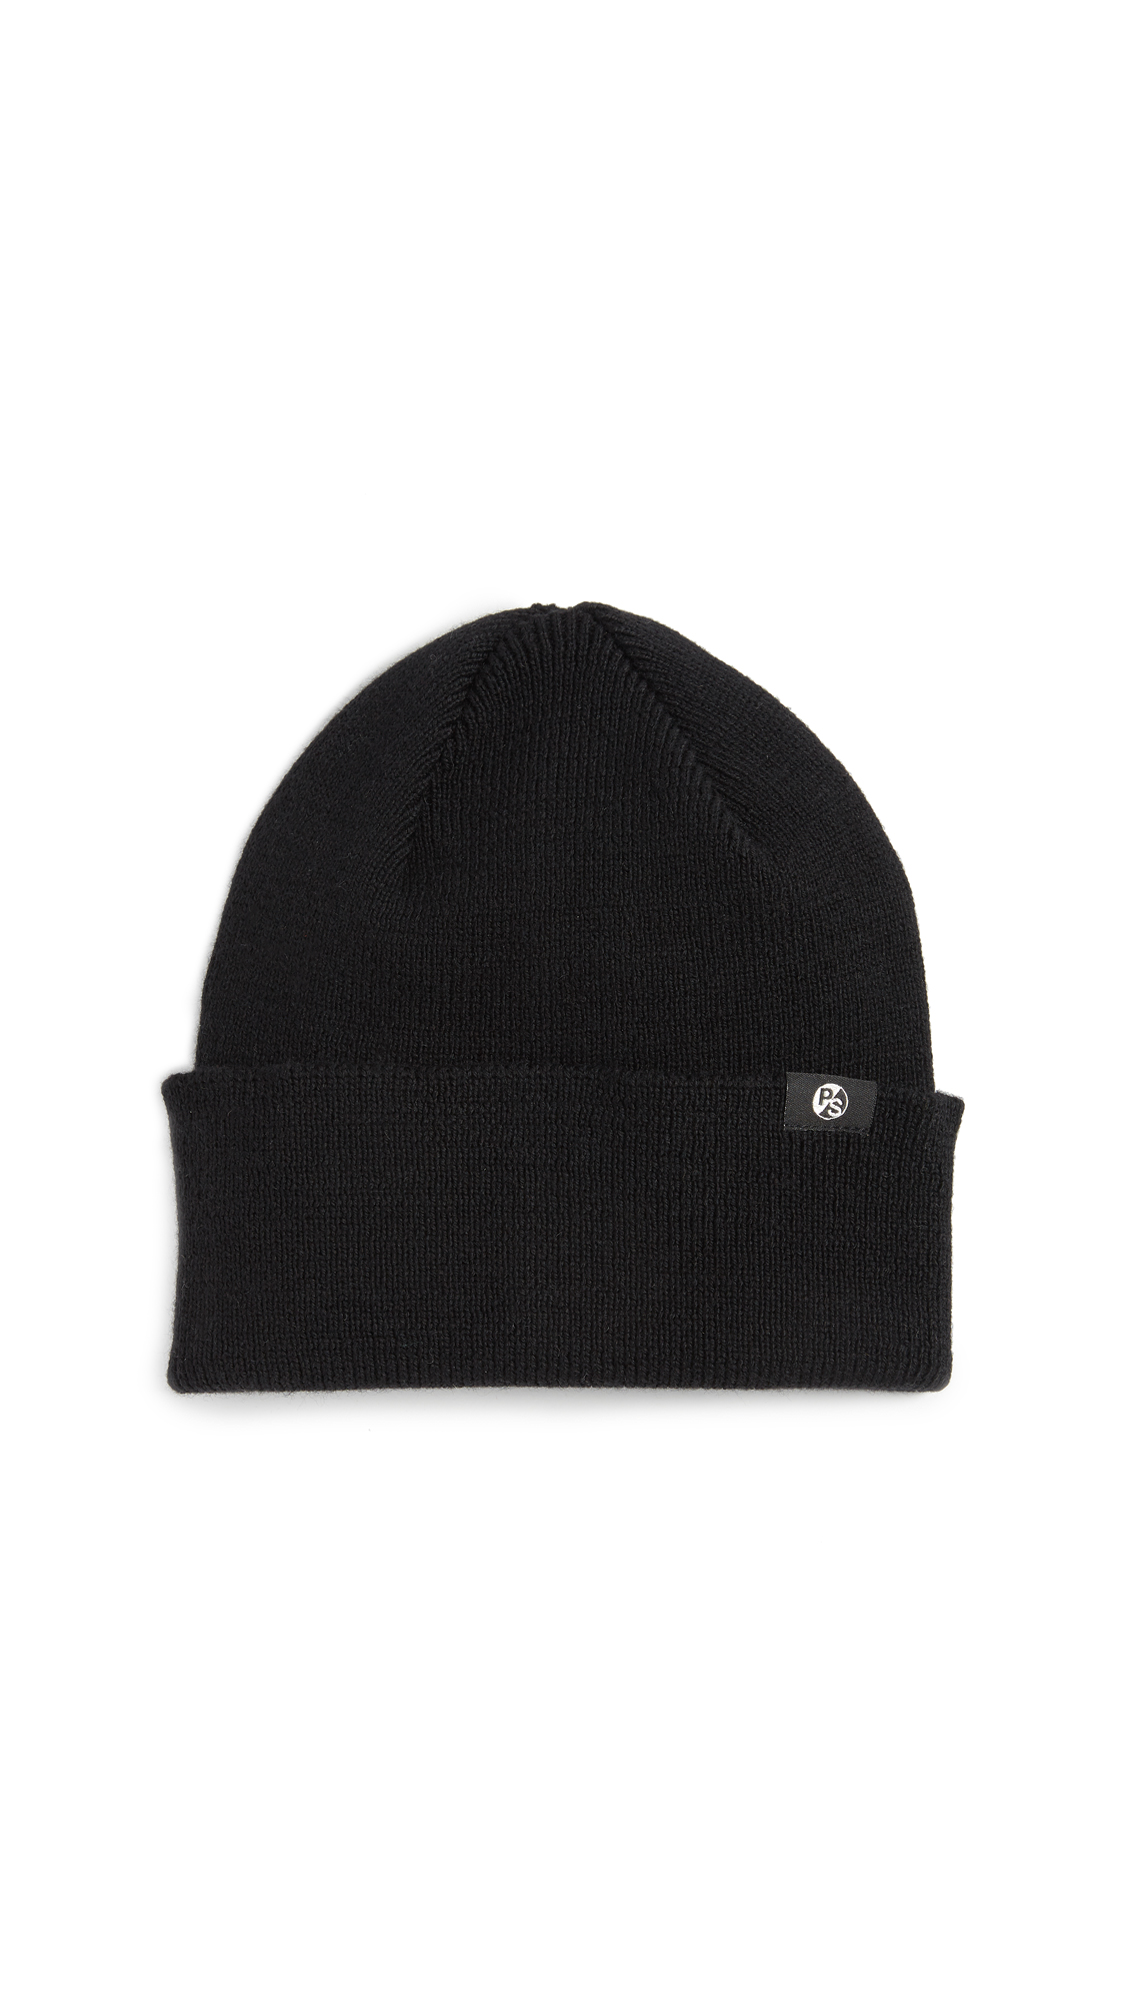 PS by Paul Smith PS Beanie